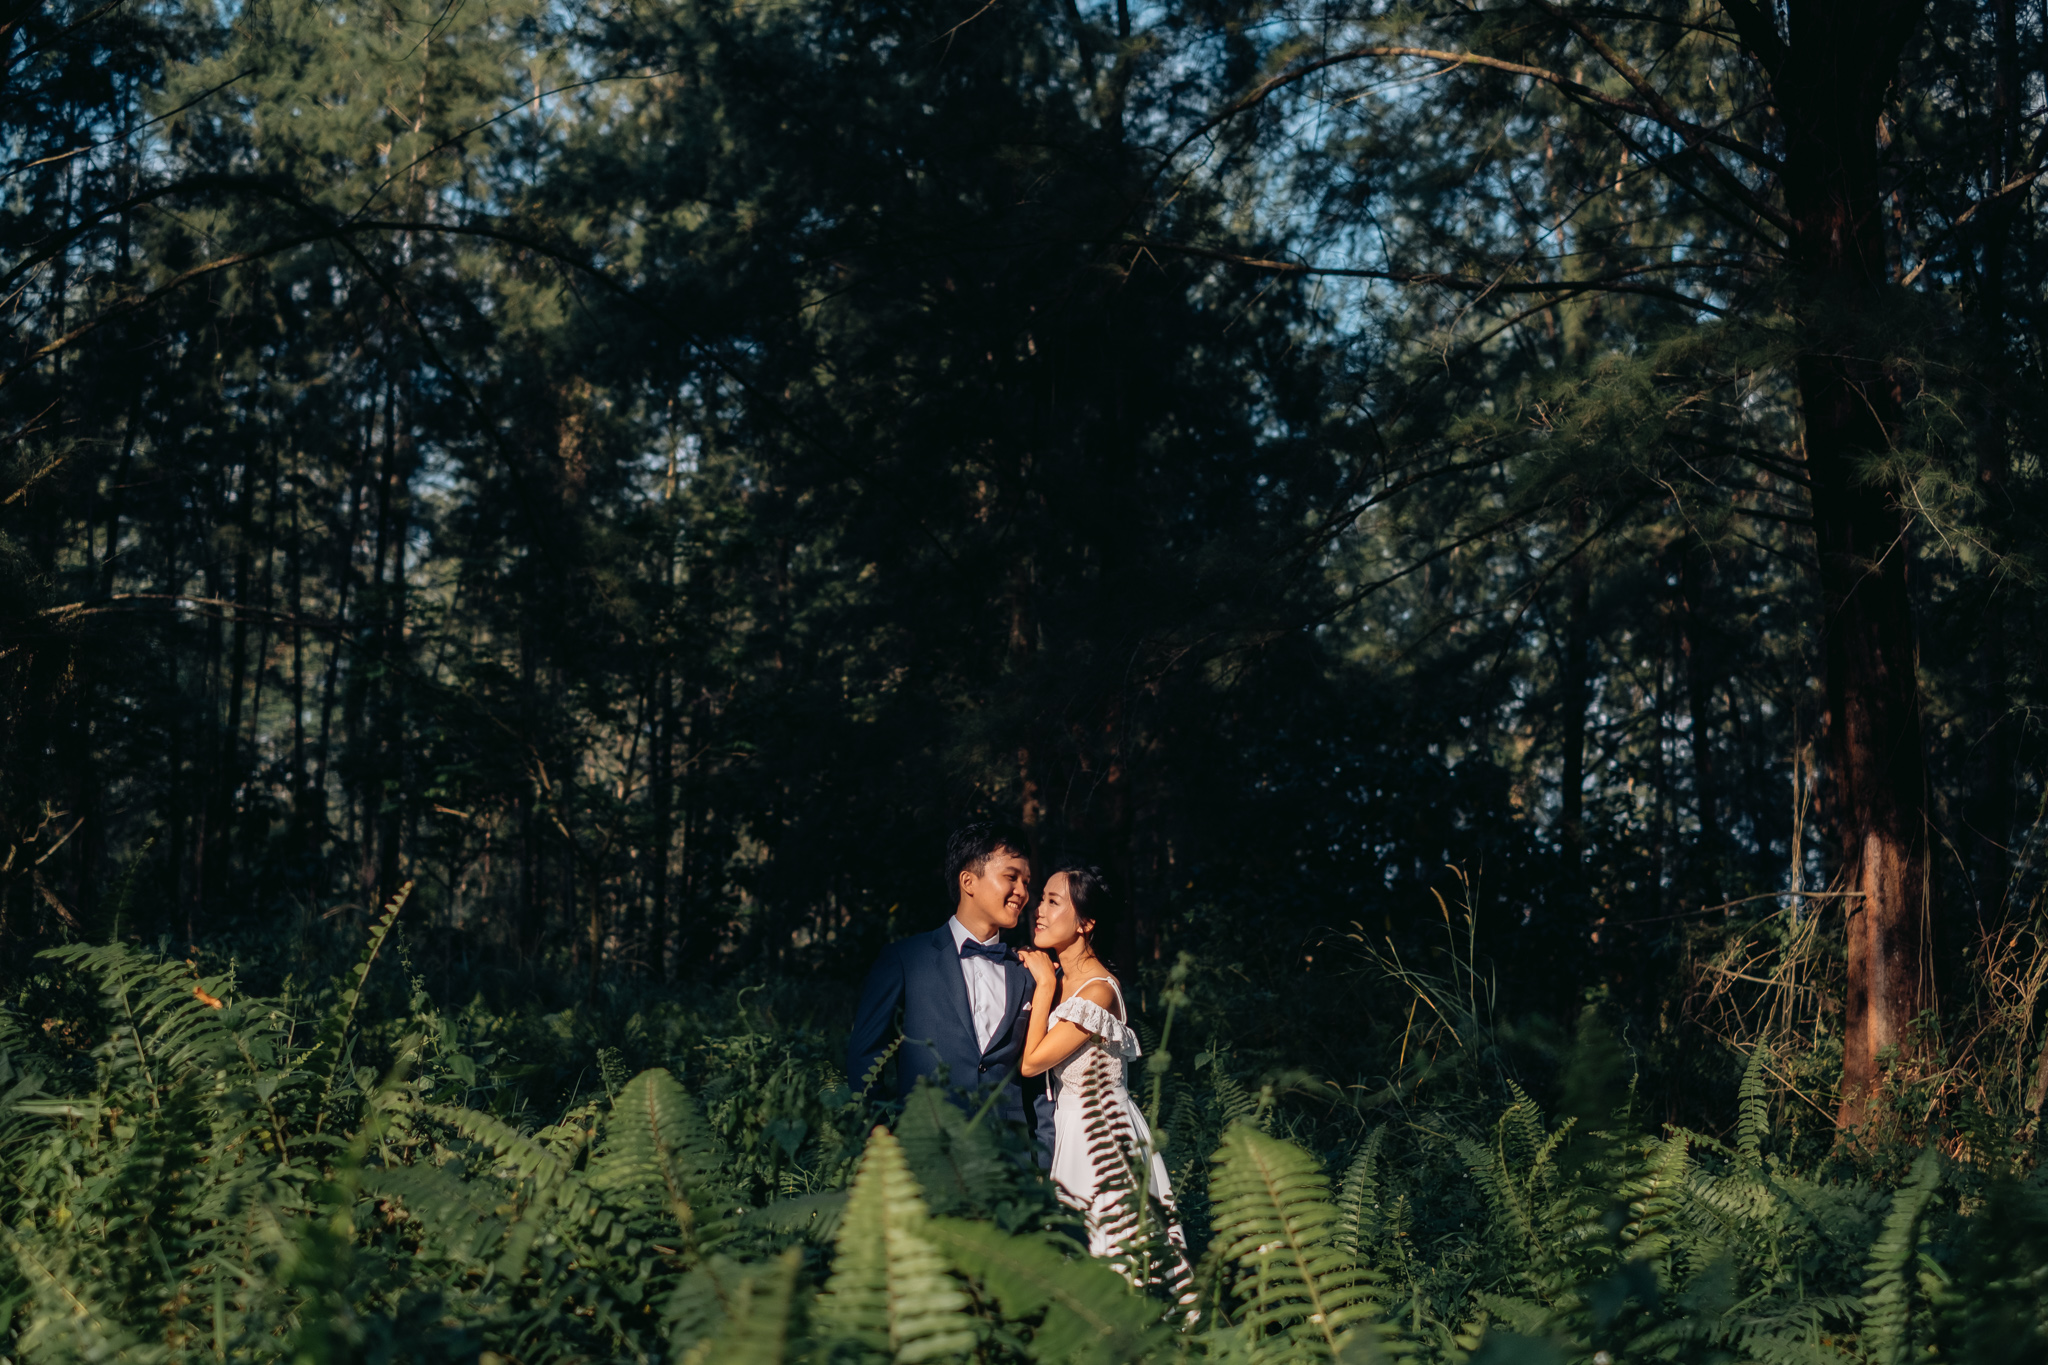 Sabrina & Willy Pre-Wed (resized for sharing) - 046.jpg